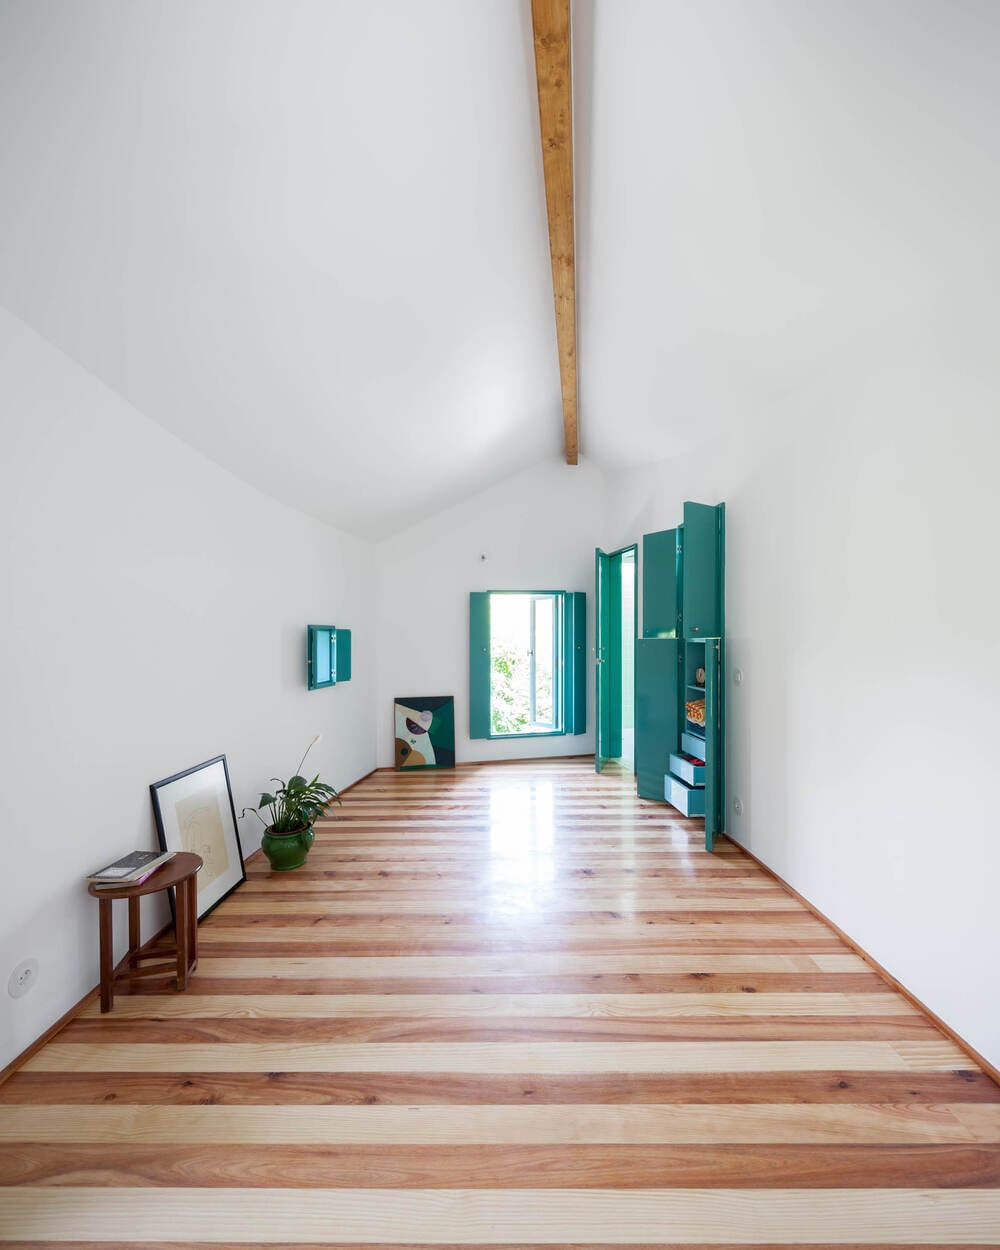 This is the large interior that has a patterned hardwood flooring paired with white walls and white cathedral ceiling with a single exposed beam in the middle.